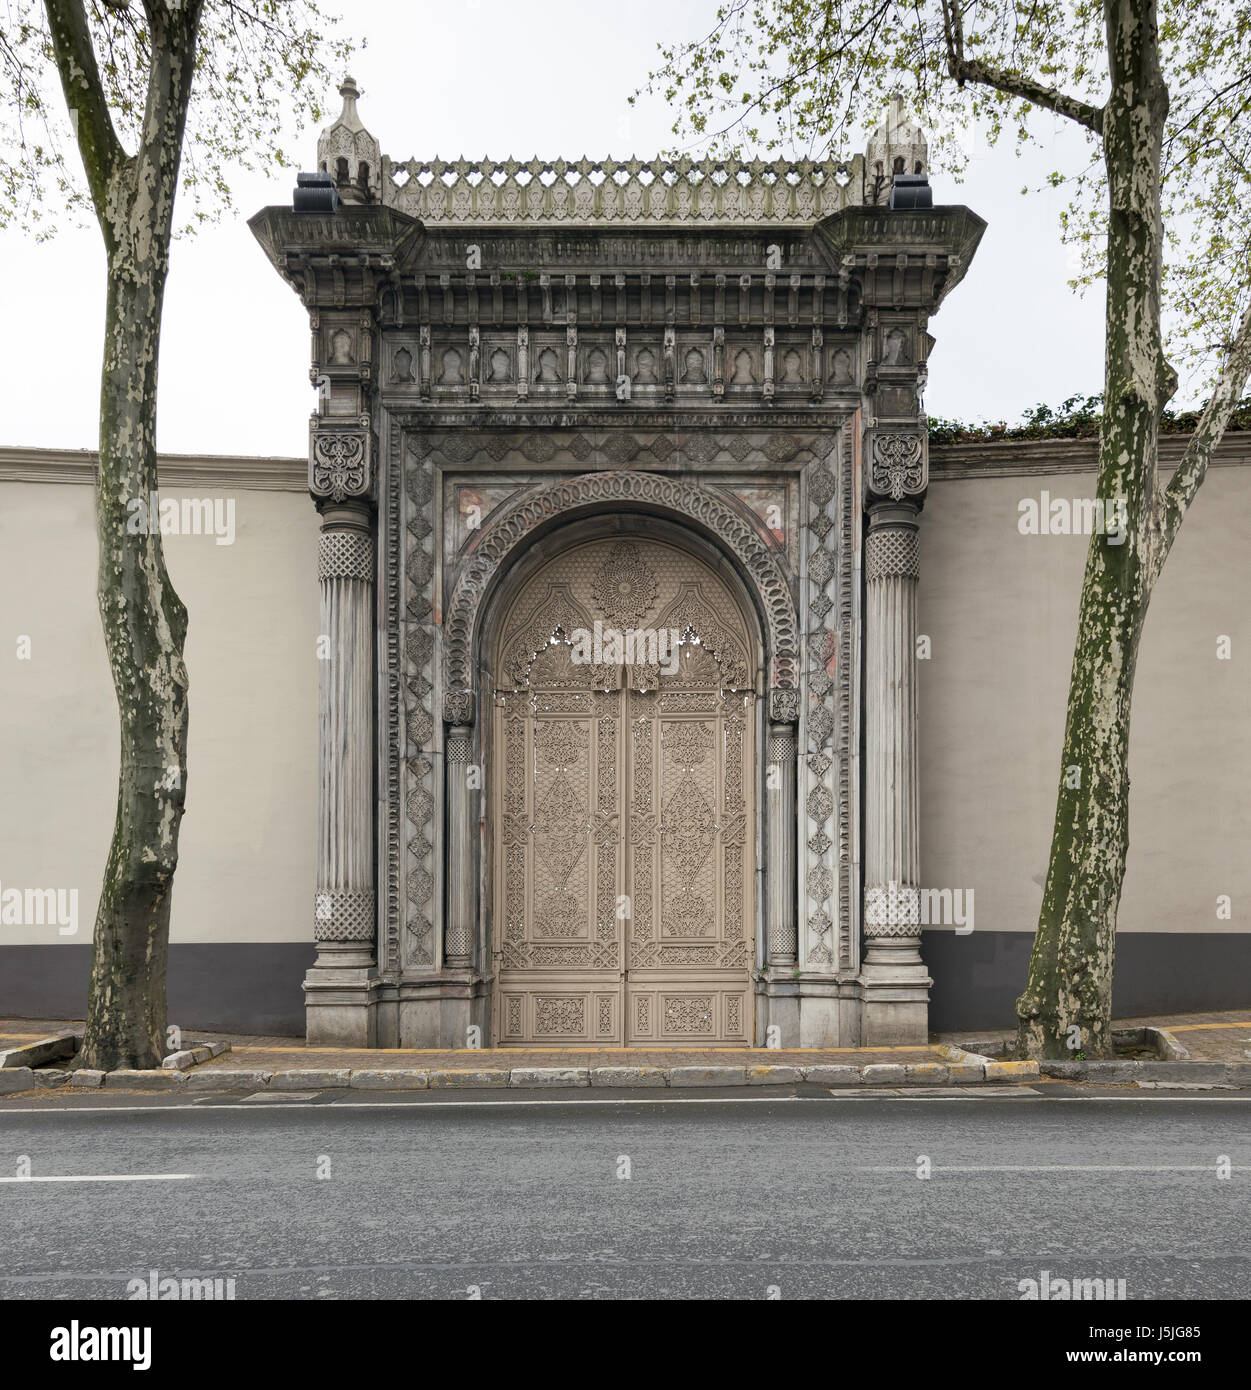 One of the doors leading to the Ciragan Palace at Ciragan Street, a former Ottoman palace located in Beshektash, - Stock Image